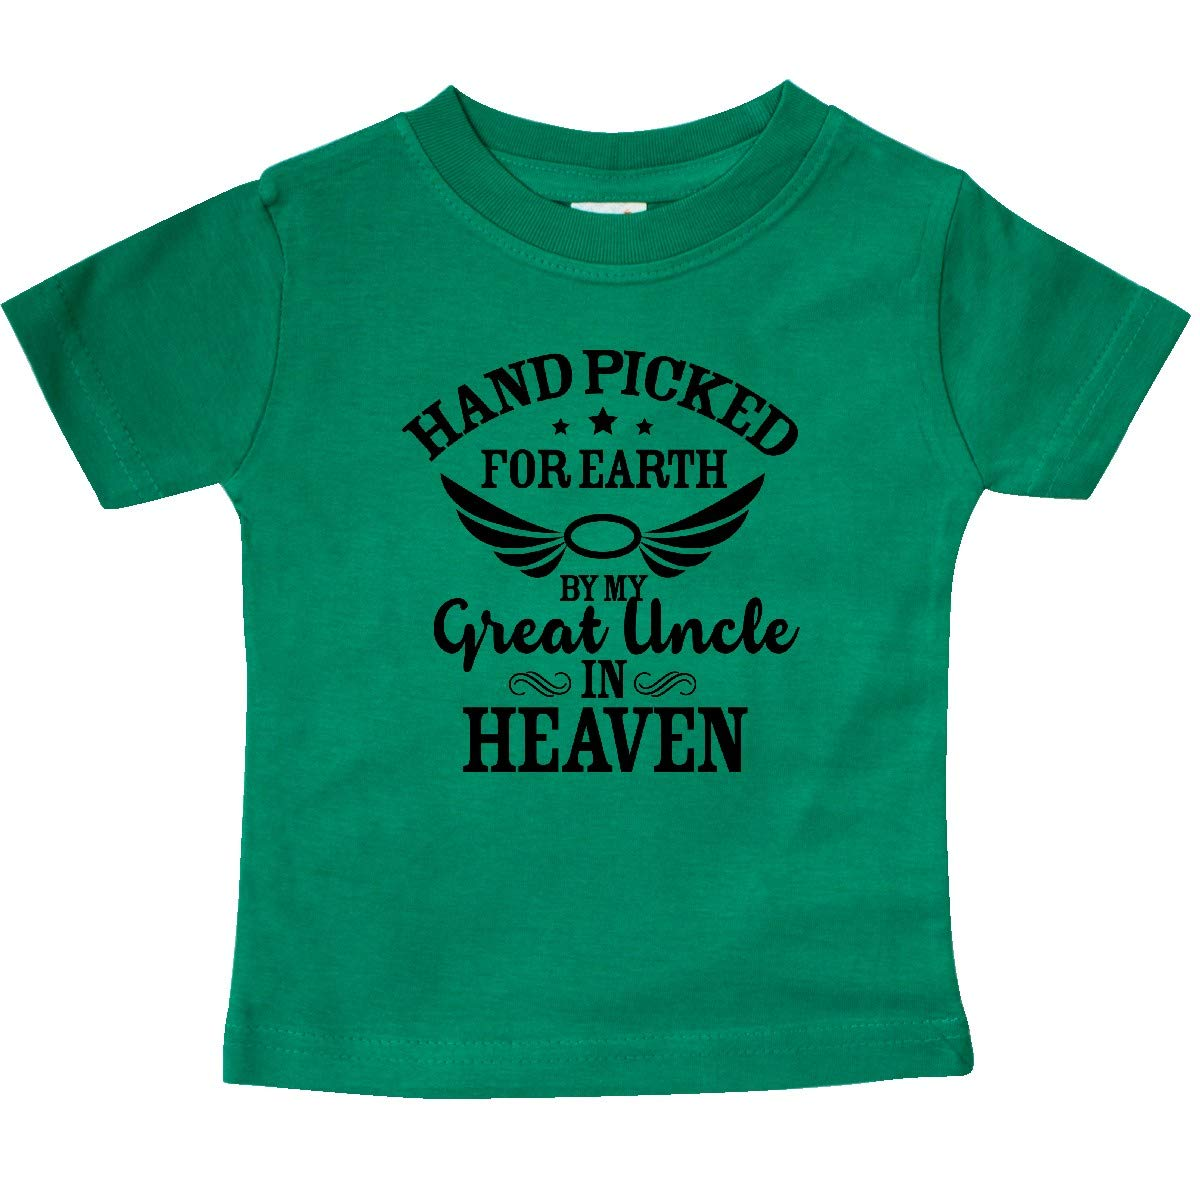 inktastic Handpicked for Earth by My Great Uncle in Heaven Baby T-Shirt